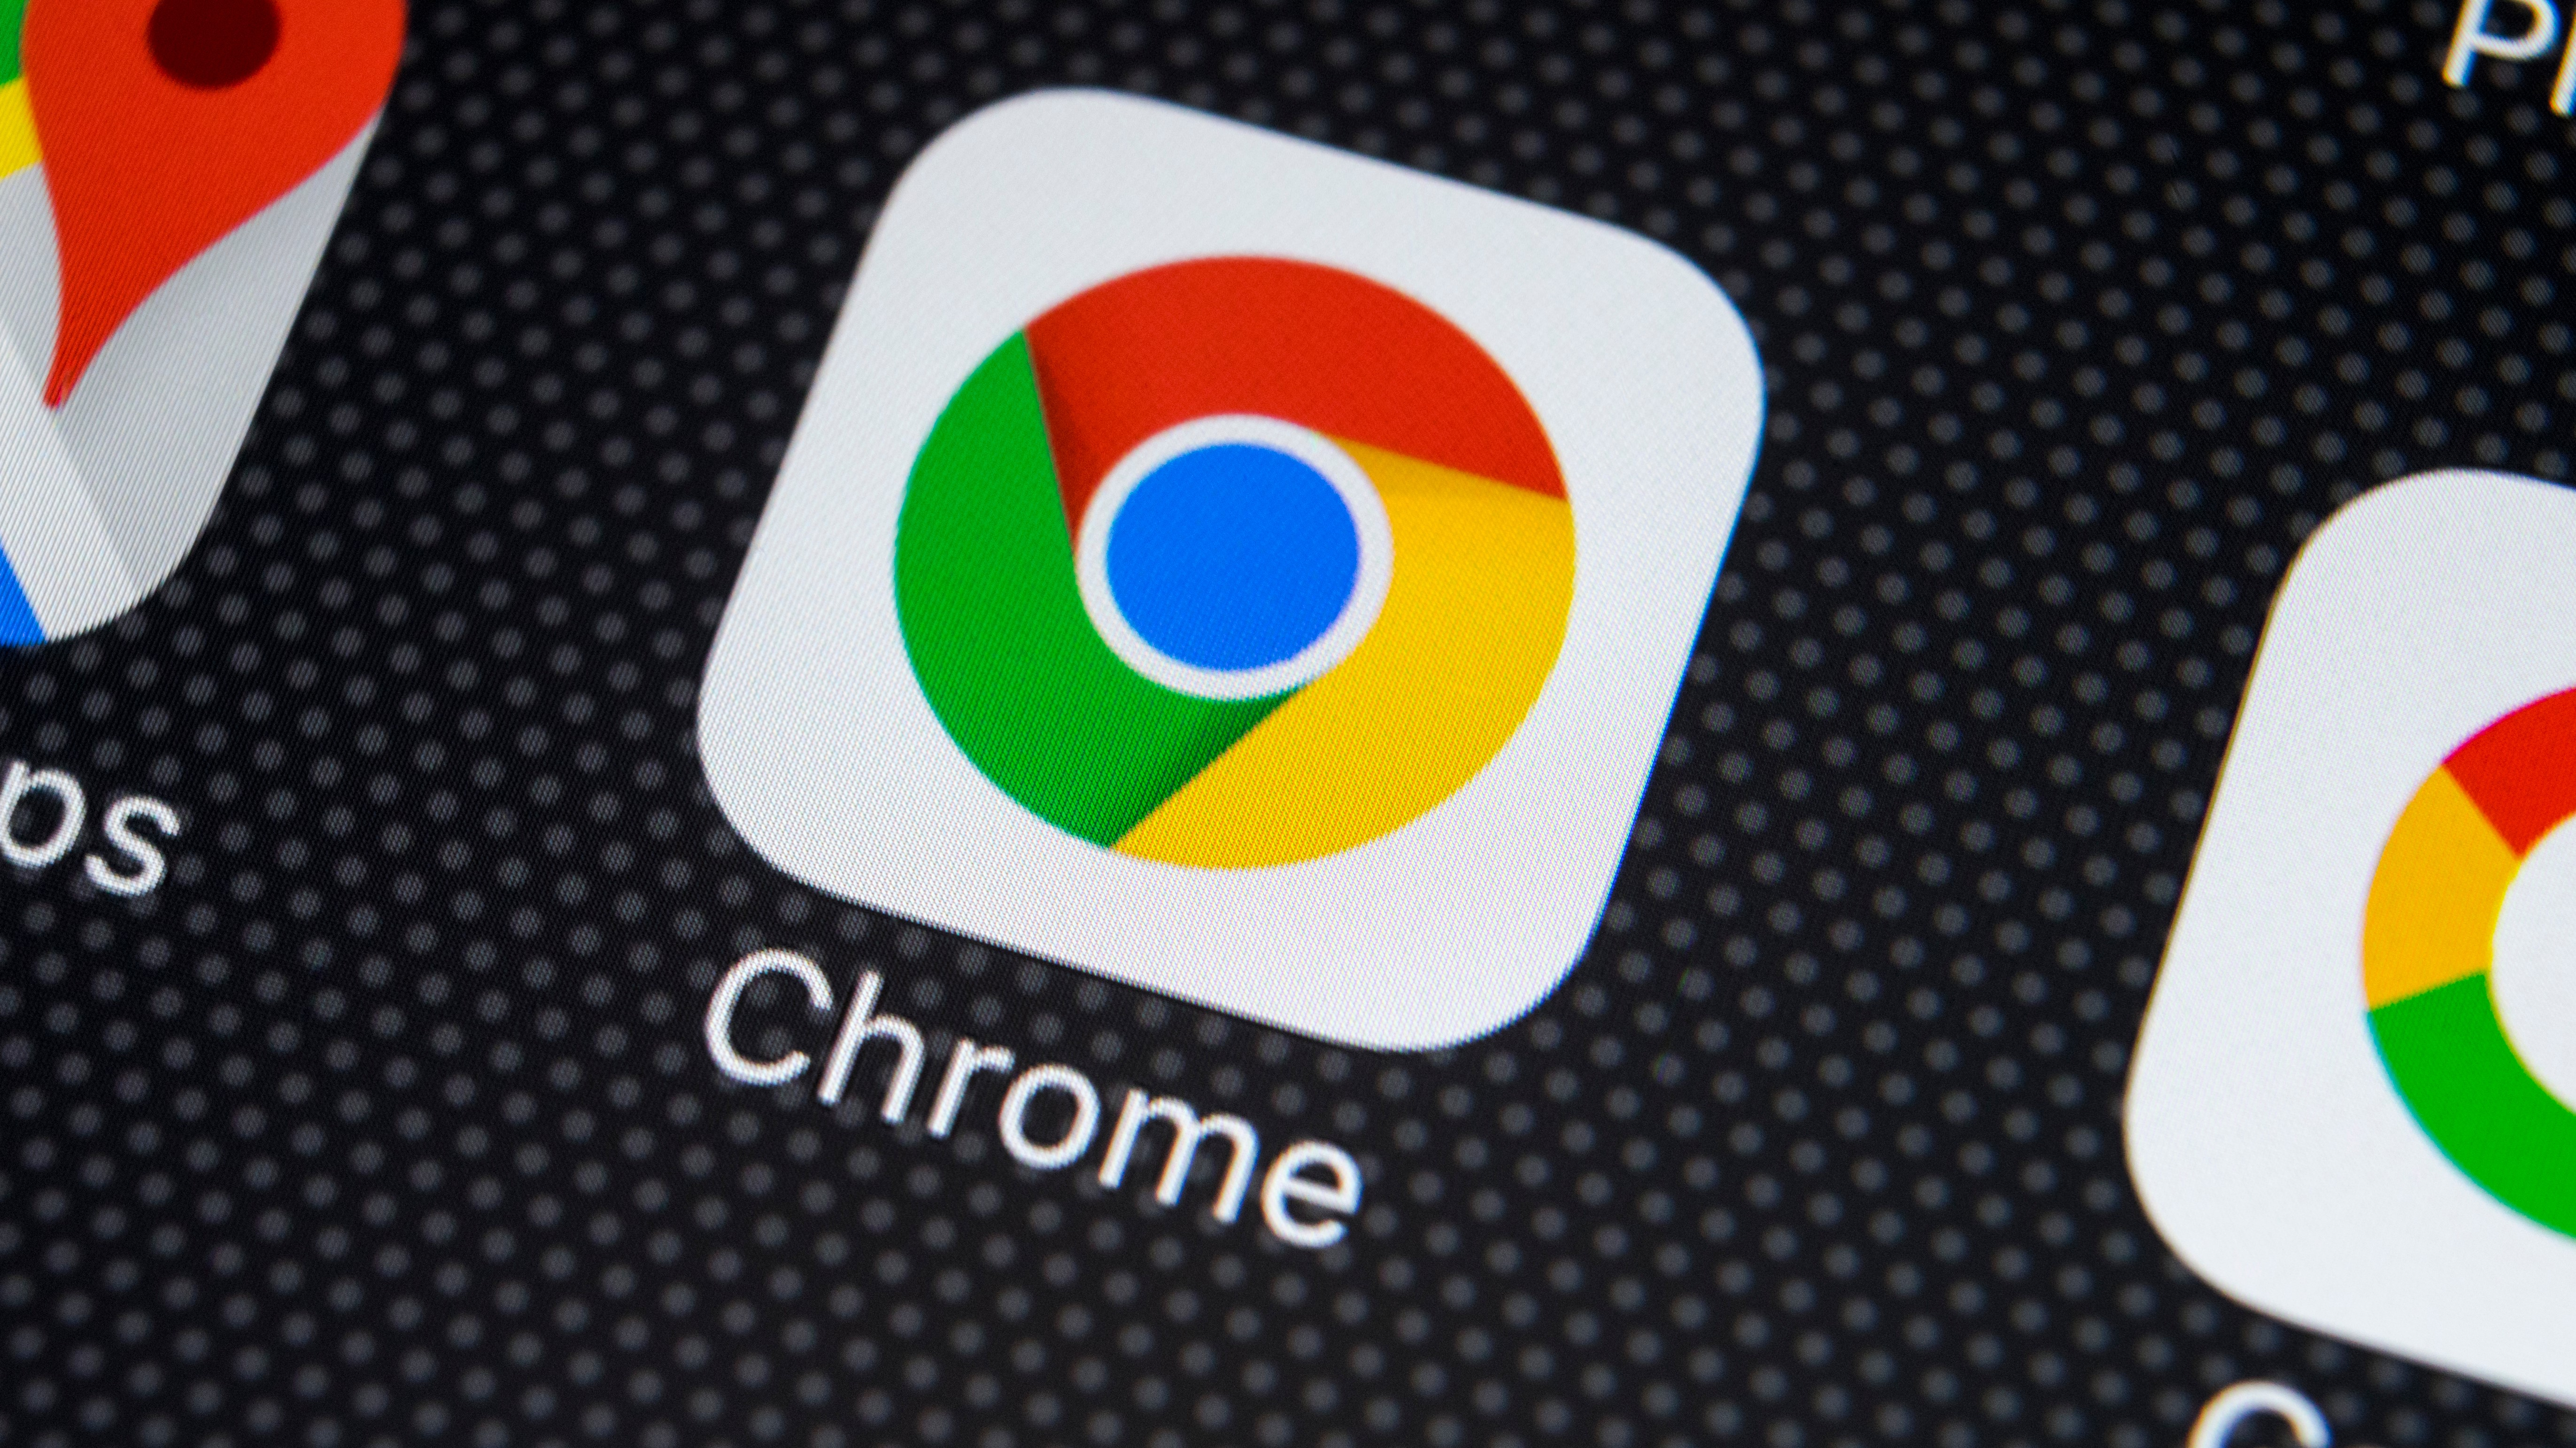 Google Chrome affected by serious security flaw